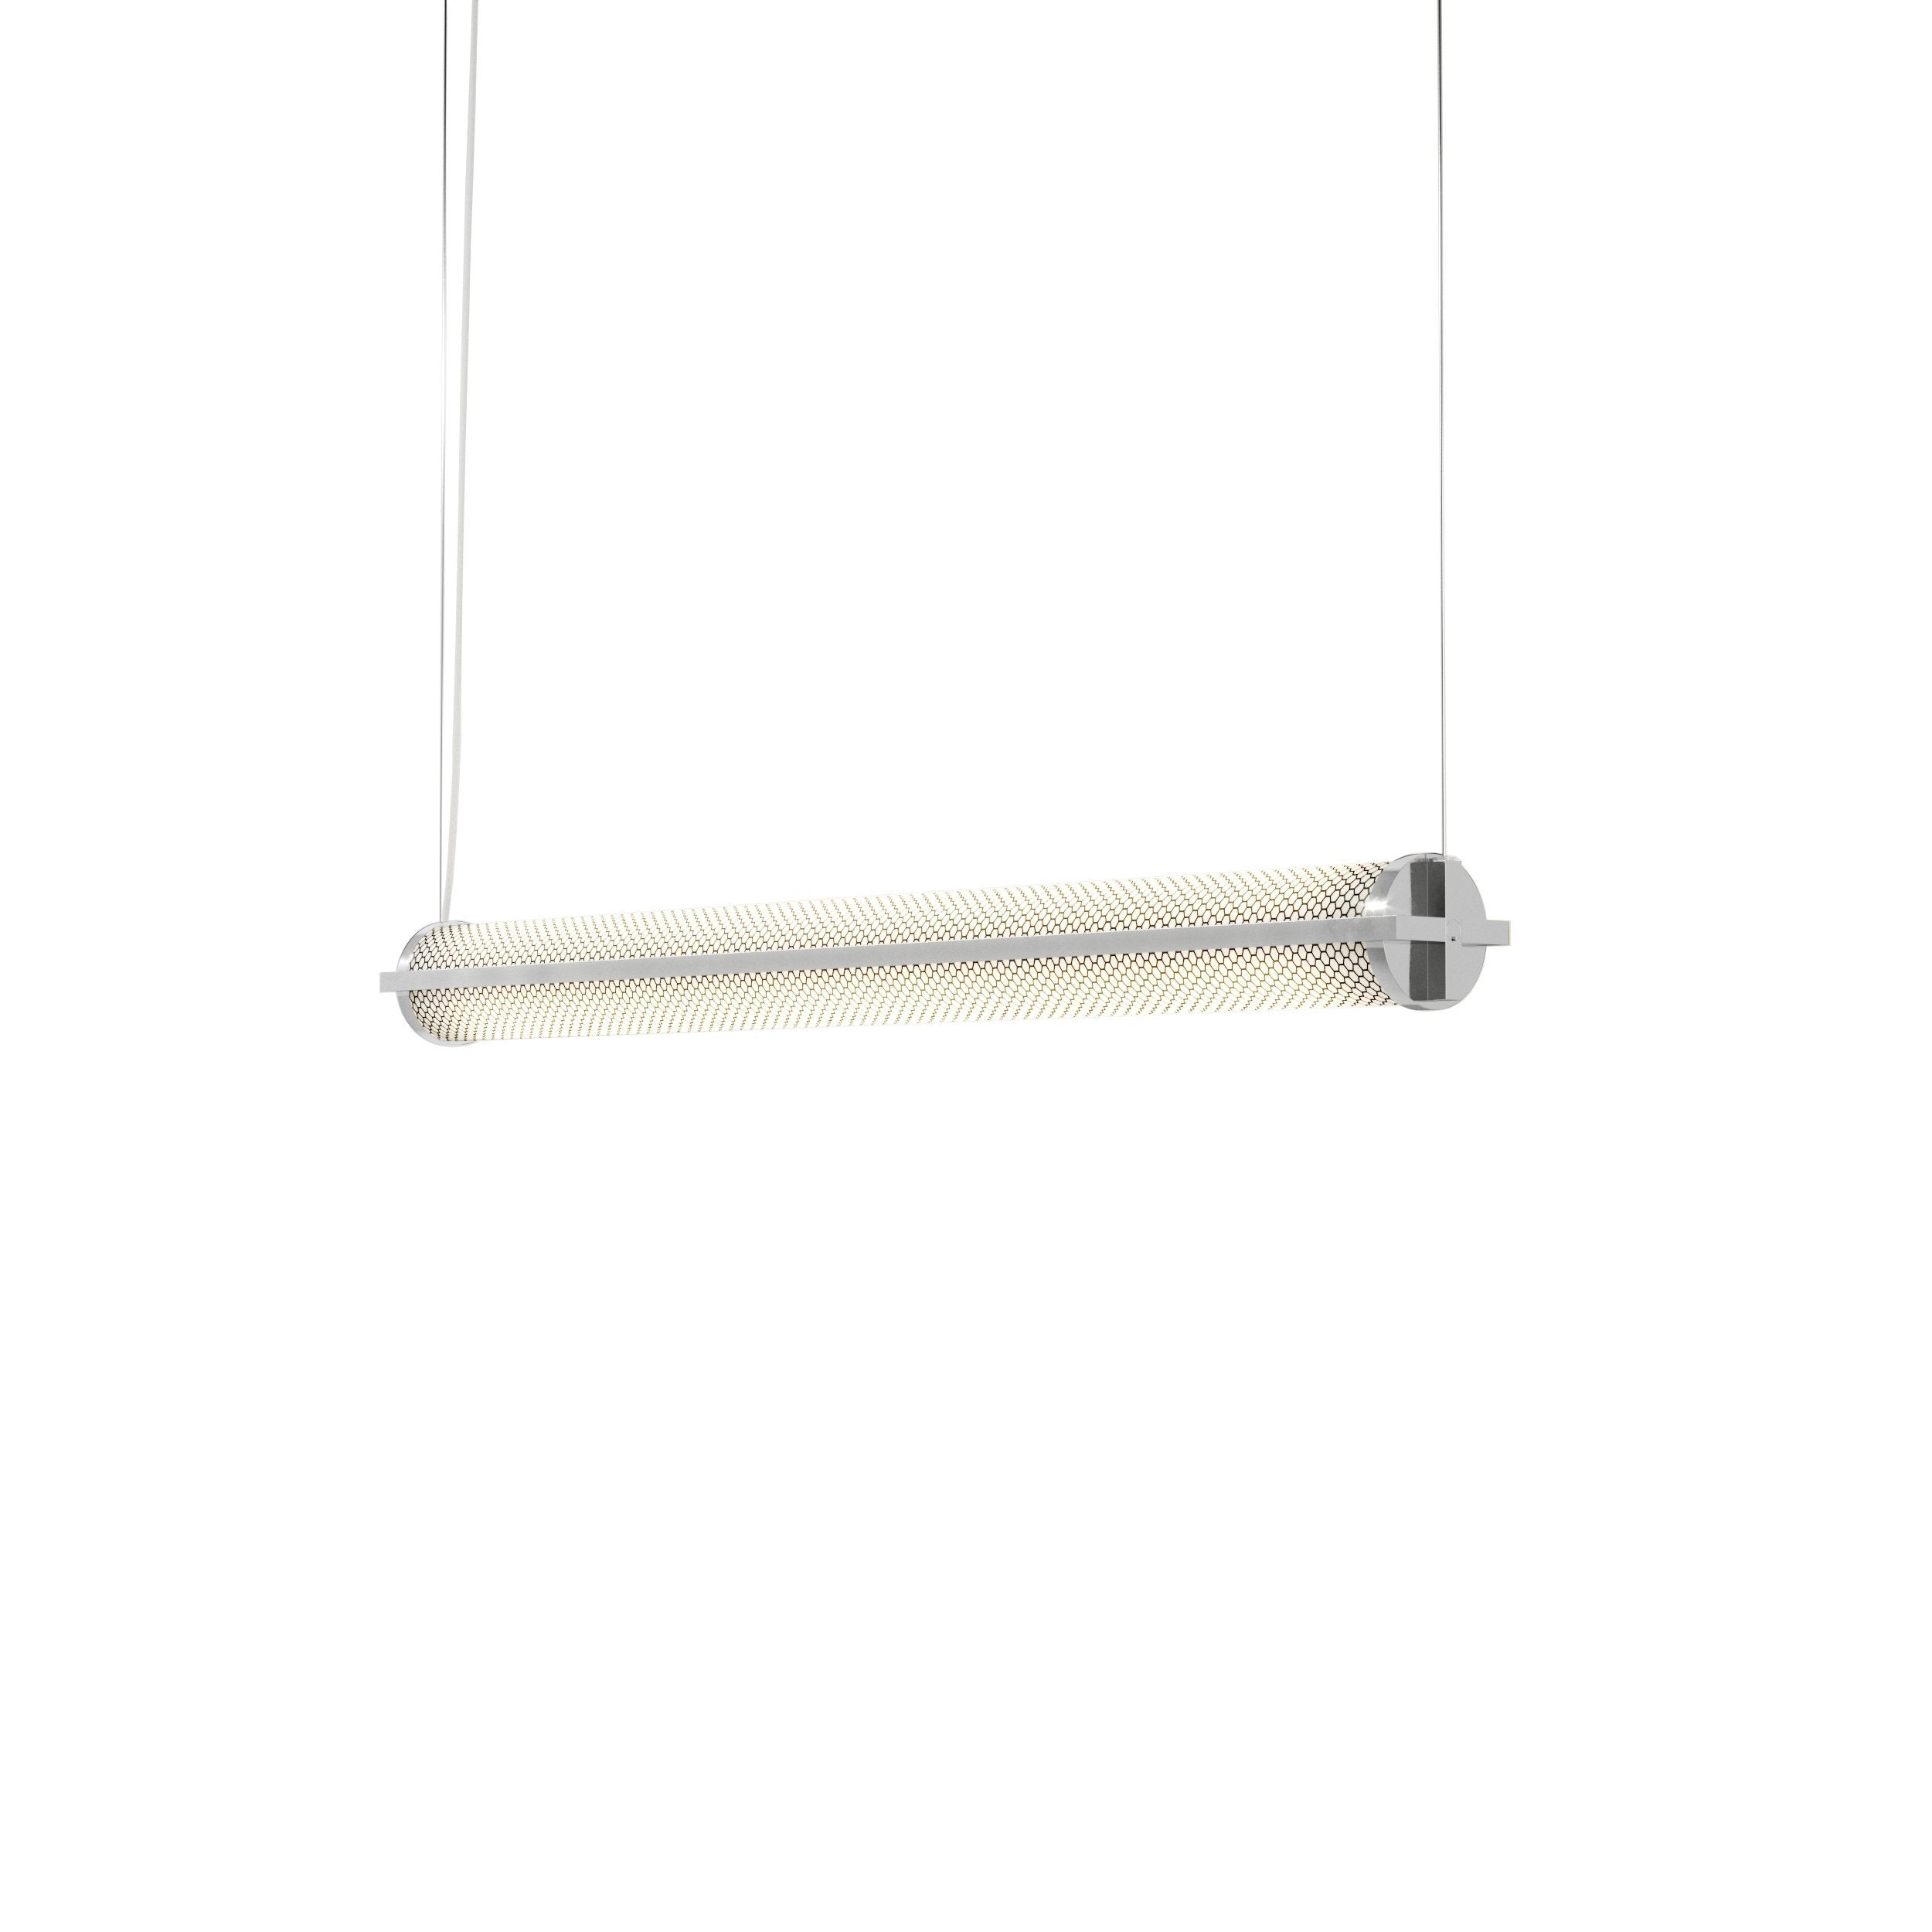 Metropolis Linear Suspension Light: Small + Polished Aluminum + Mesh Diffuser